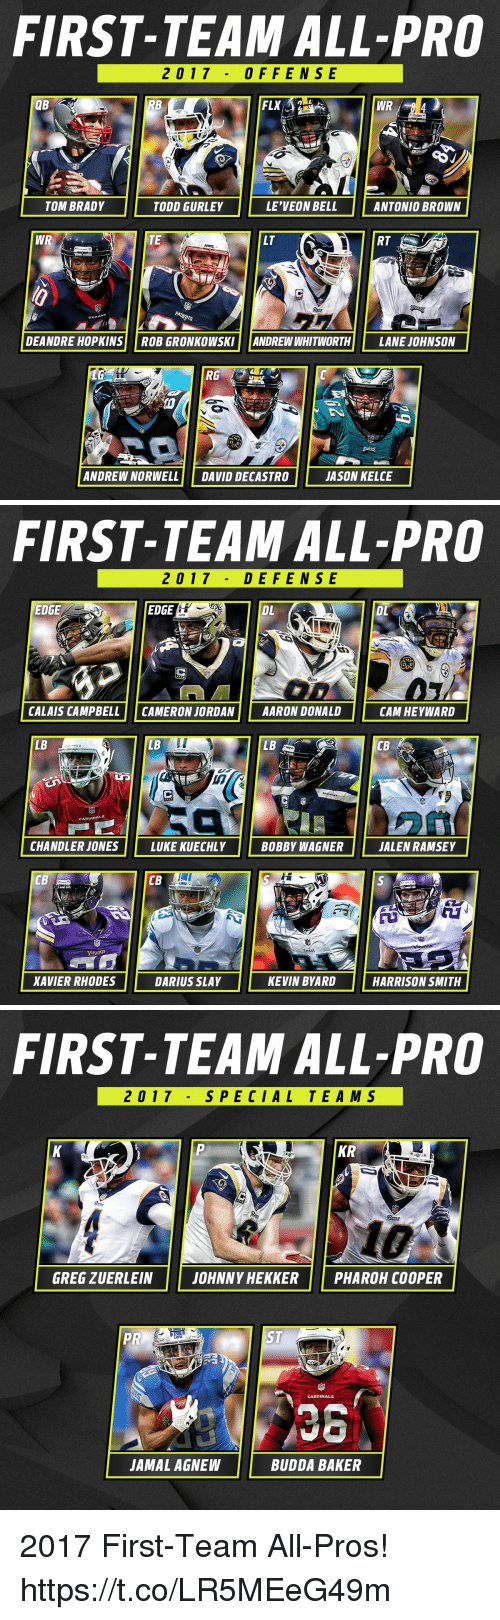 kuechly: FIRST-TEAM ALL-PRO  2017 0F FENSE  QB  RB  FLX2  TOM BRADY  TODD GURLEY  LEVEON BELL  ANTONIO BROWN  WR  TE  LT  RT  Pa  DEANDRE HOPKINS ROB GRONKOWSKI ANDREW WHITWORTH LANE JOHNSON  RG  ANDREW NORWELL DAVID DECASTRO  JASON KELCE   FIRST-TEAM ALL-PRO  2017 DE FENSE  EDGE  EDGE  DL  DL  CALAIS CAMPBELL CAMERON JORDAN AARON DONALD  CAM HEYWARD  LB  LB  CB  CARDINALS  CHANDLER JONES  LUKE KUECHLY  BOBBY WAGNER  JALEN RAMSEY  CB  XAVIER RHODES  DARIUS SLAY  KEVIN BYARD  HARRISON SMITH   FIRST-TEAM ALL-PRO  2017S PE CIAL TEA M S  KR  Rams  GREG ZUERLEINJOHNNY HEKKER PHAROH COOPER  PR  ST  CARDINALS  36  JAMAL AGNEW  BUDDA BAKER 2017 First-Team All-Pros! https://t.co/LR5MEeG49m